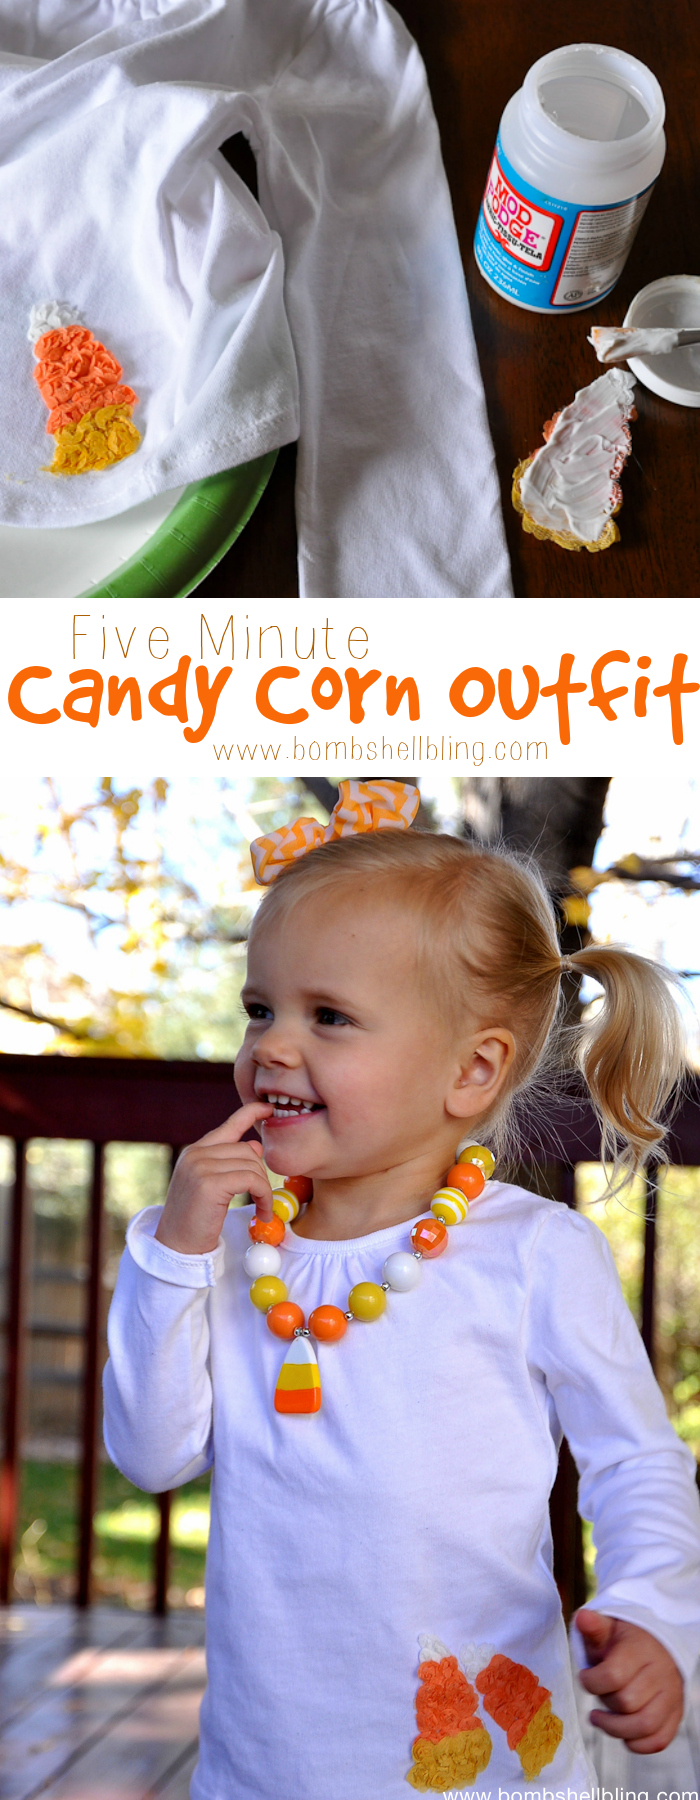 Make this adorable candy corn outfit in five minutes flat!